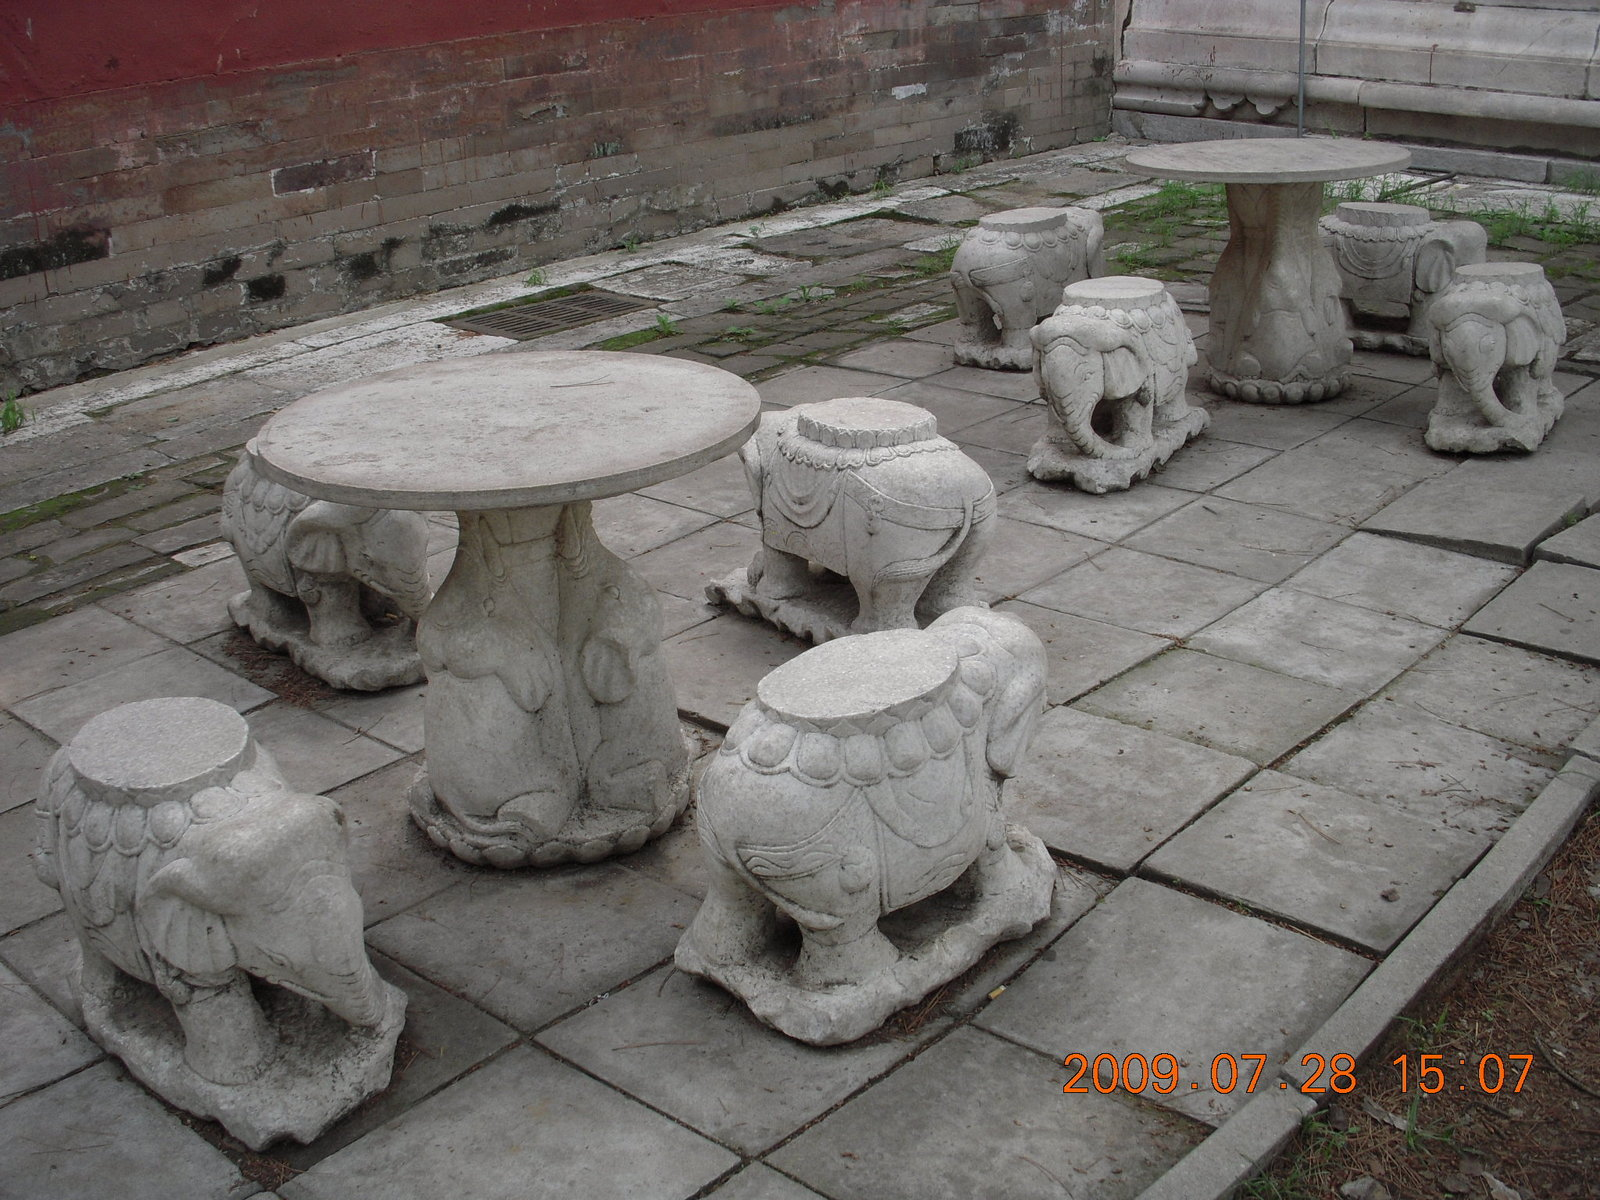 China eclipse - Beijing tour - Ming Tomb - elephant seats